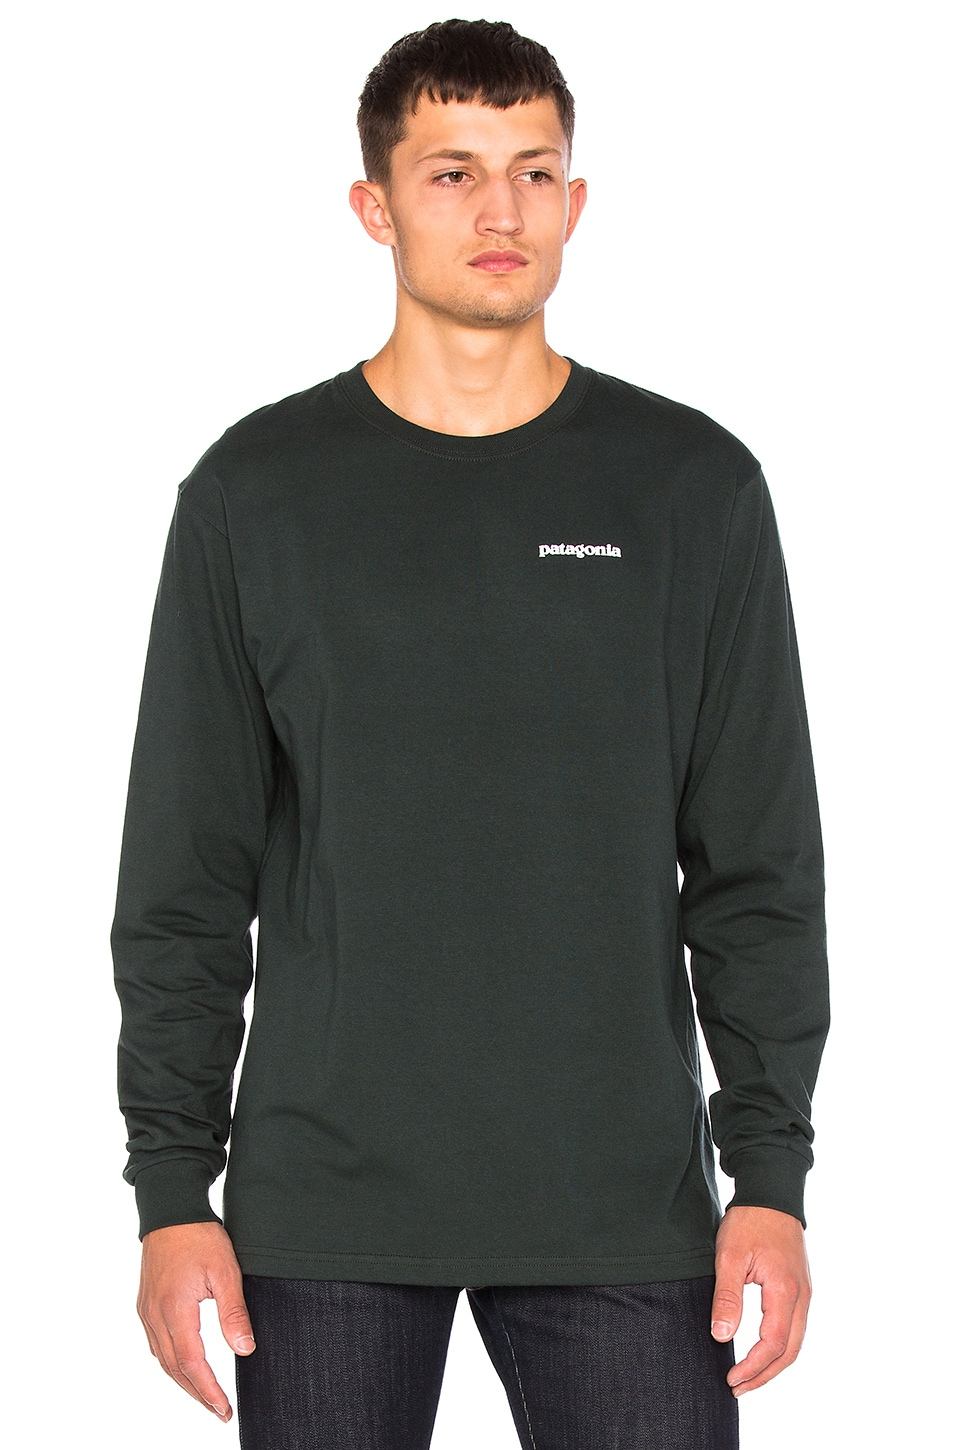 a5ecab3f282b6 Patagonia P-6 Logo Long Sleeve Tee in Carbon